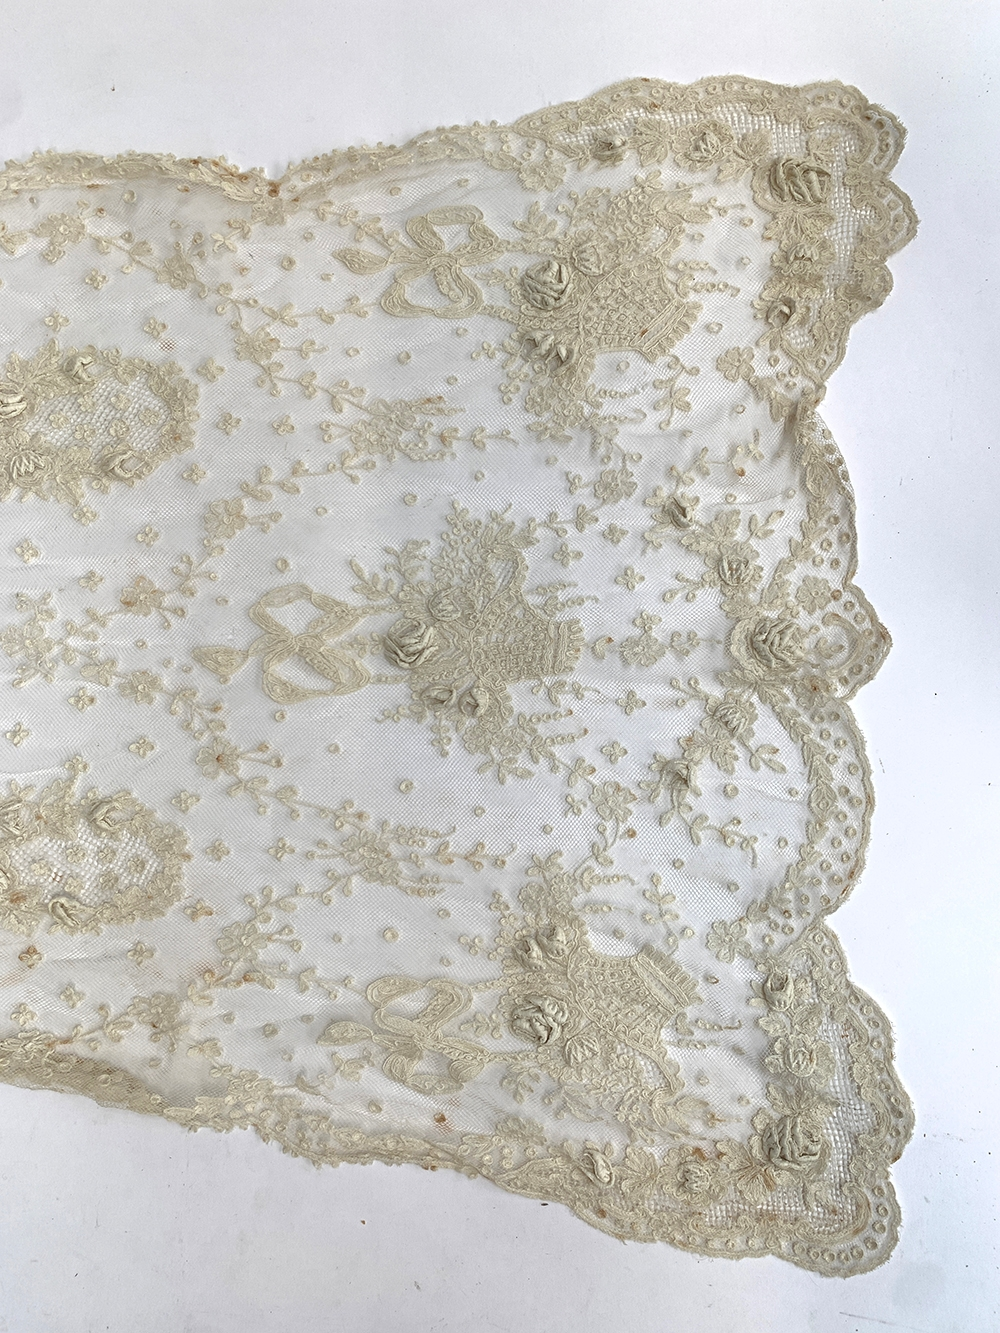 A very fine Victorian lace shawl embellished with baskets of roses, approx. 260cm long, 45cm wide - Image 2 of 2